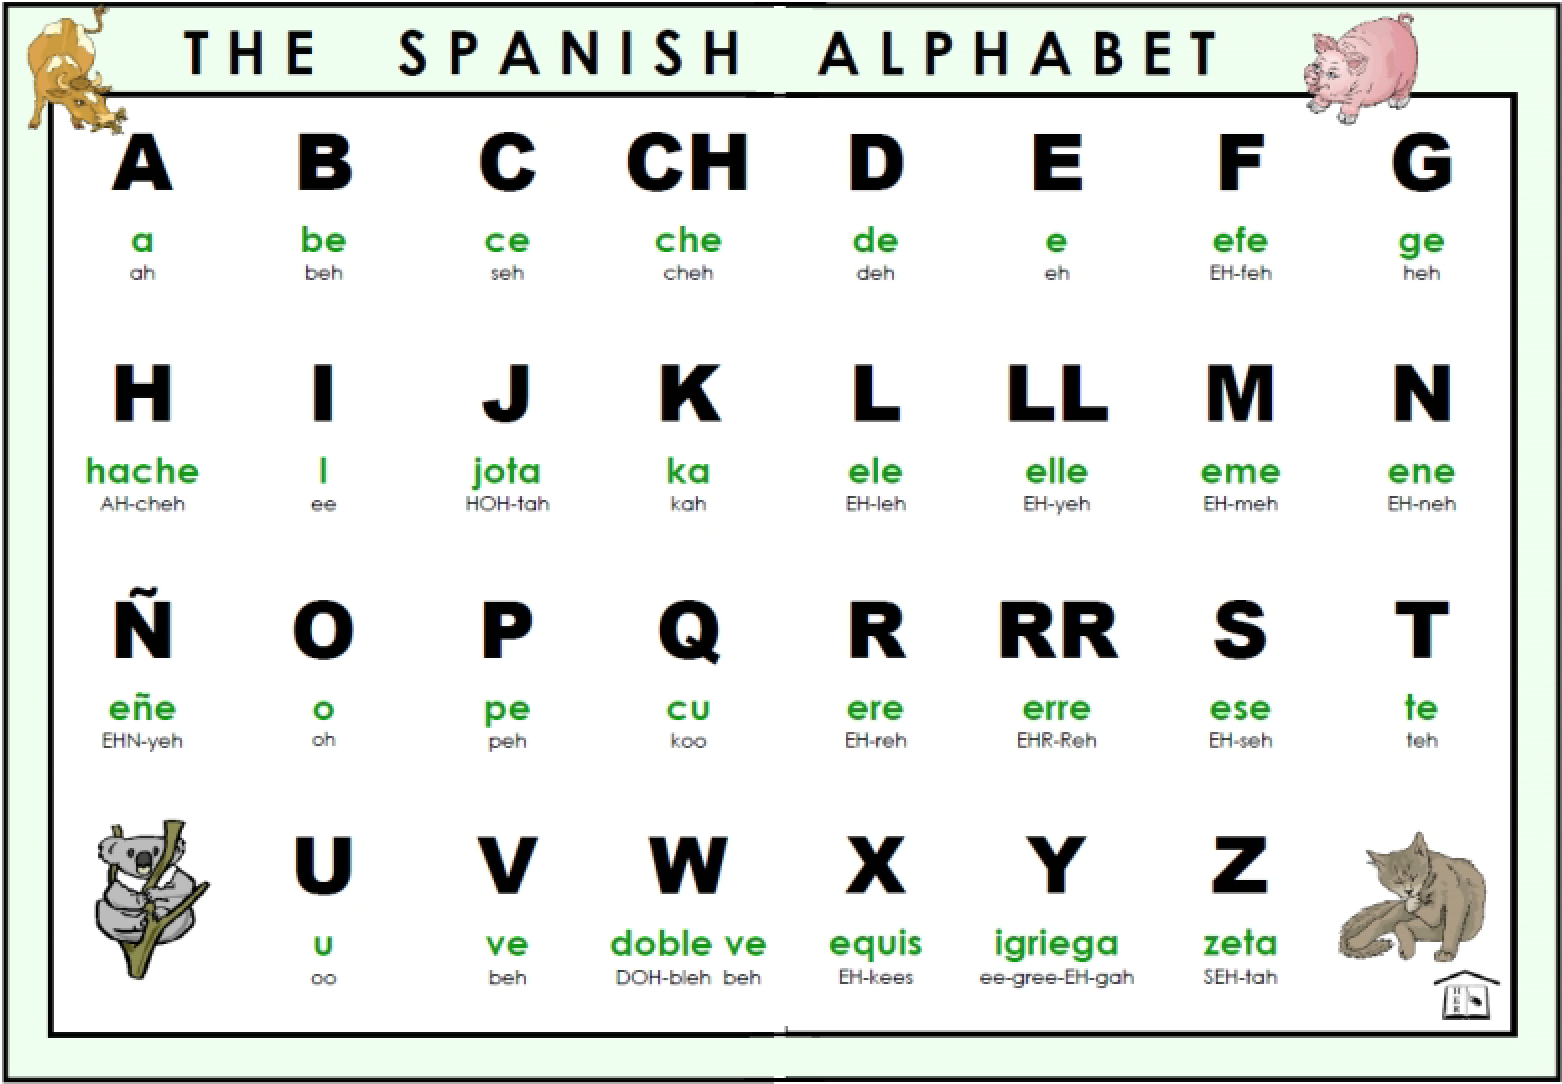 The Full Spanish Alphabet by Mora0711 on DeviantArt